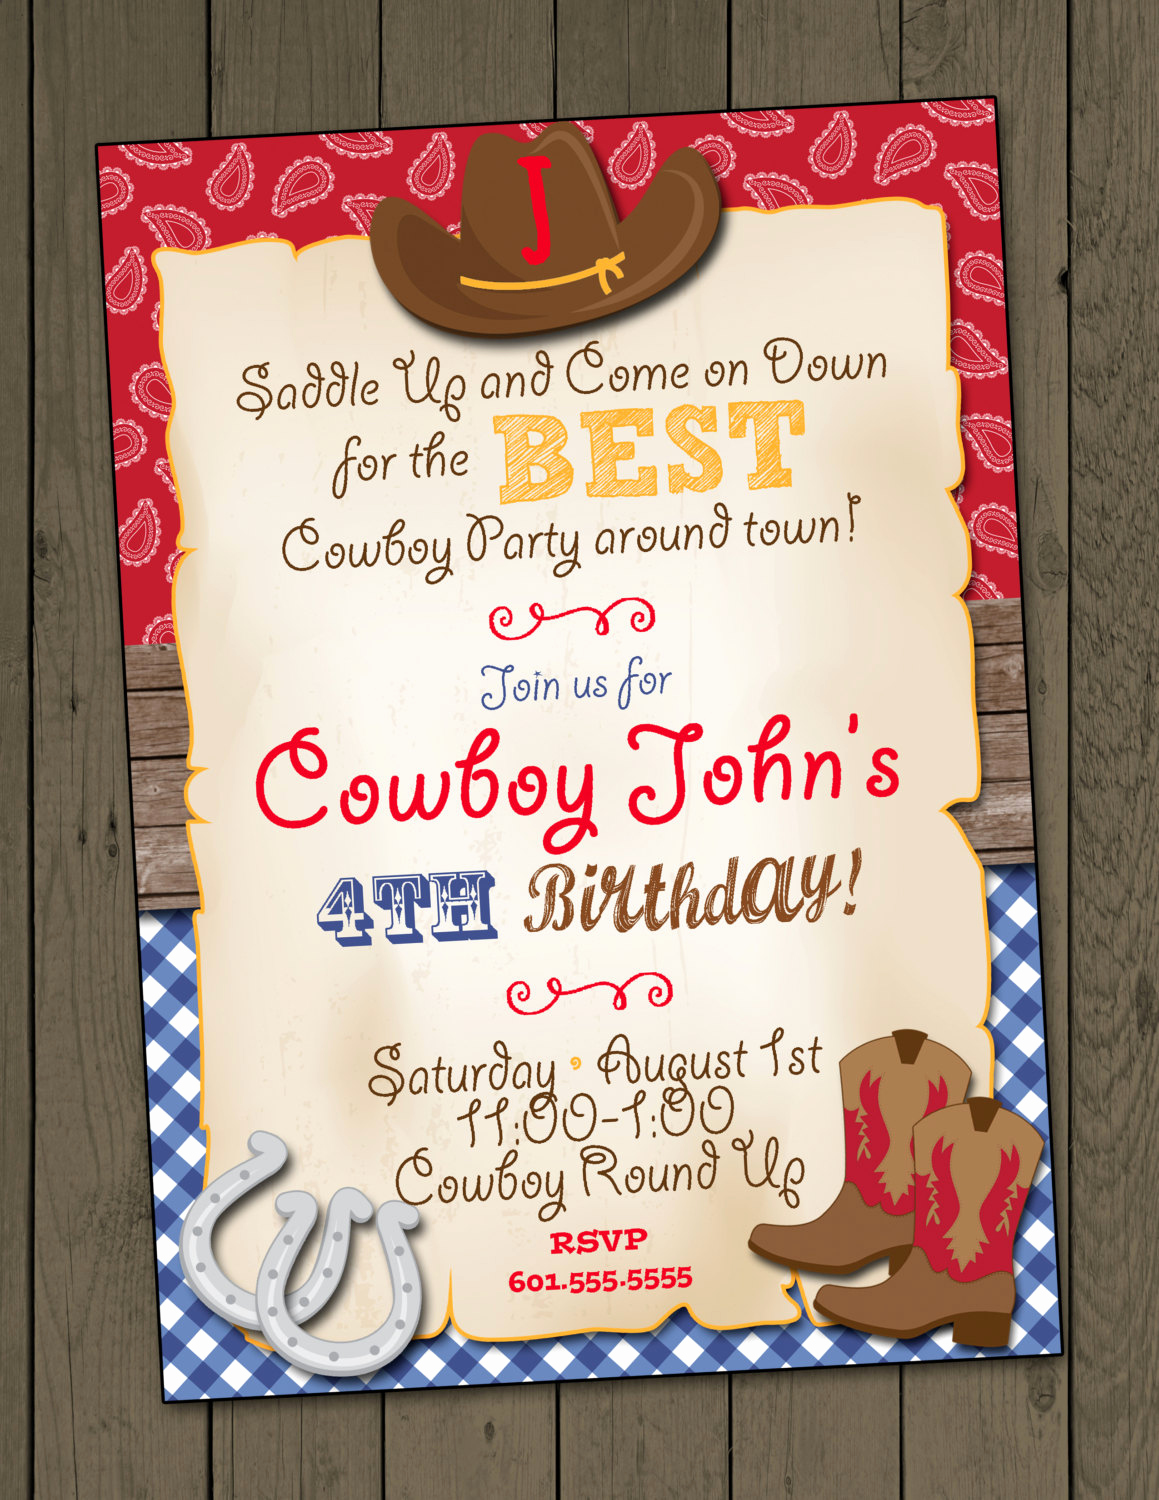 Cowboy Invitations Template Free Elegant Cowboy Birthday Party Invitation Cowboy Invitation Digital